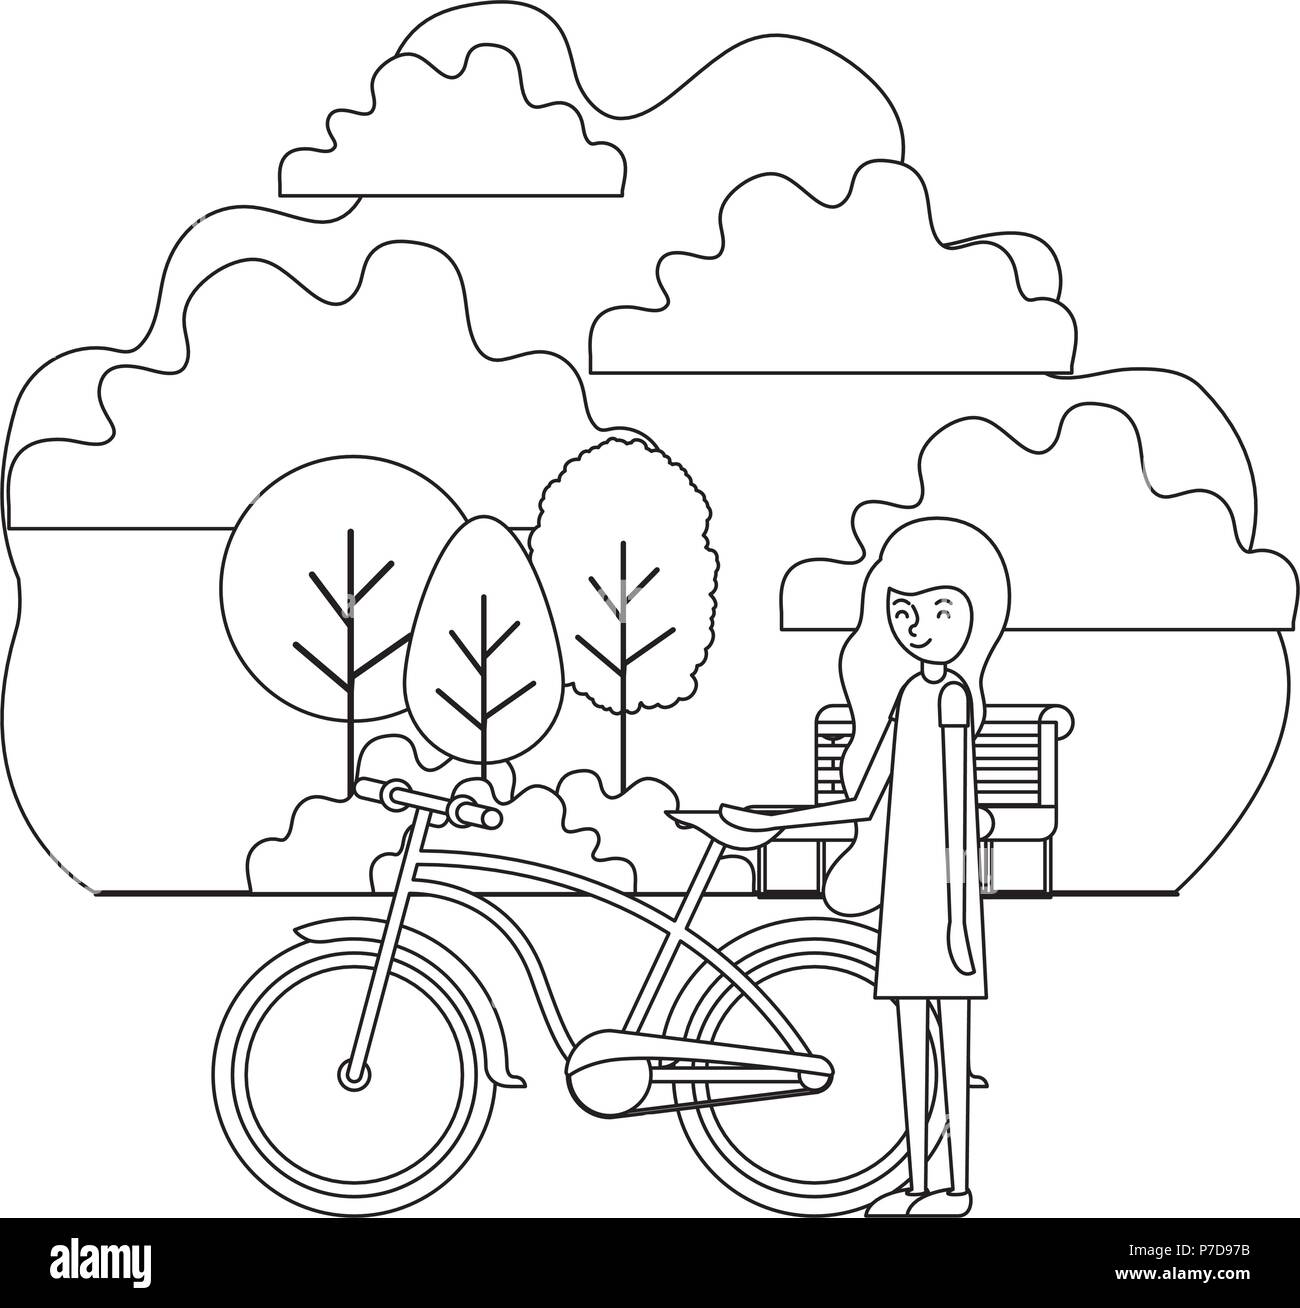 woman with bike black and white stock photos images alamy Harley Chopper 1970 Couples woman in the park with bicycle stock image